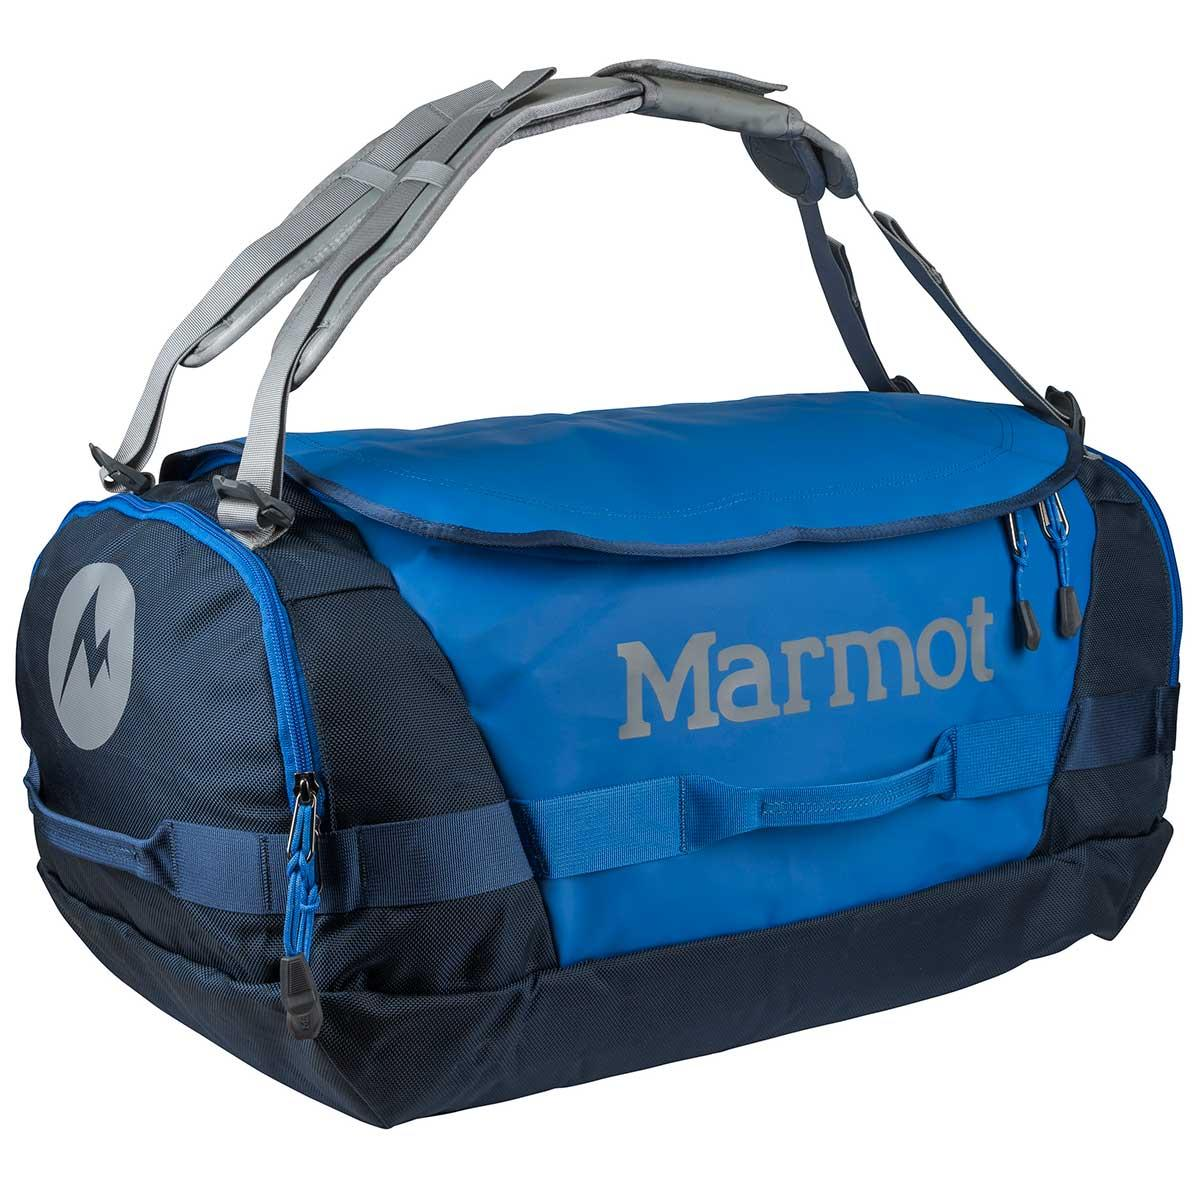 Marmot Long Hauler Duffle Bag Medium in Peak Blue and Navy main view